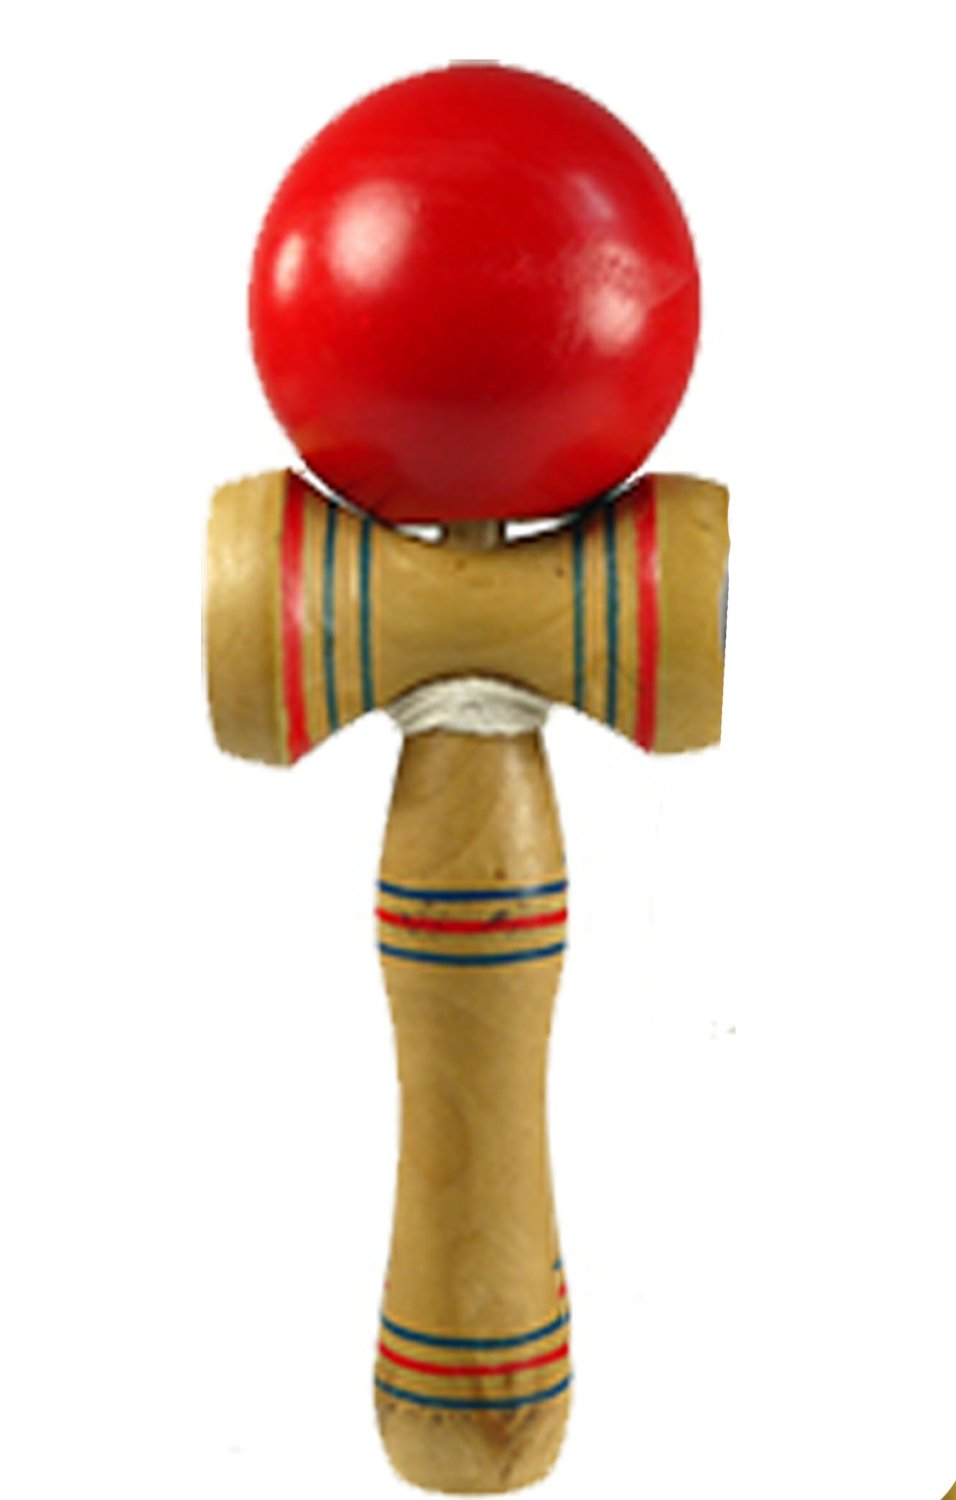 Japanese Wooden Toys : Standard size japanese kendama wooden wood toy ball string